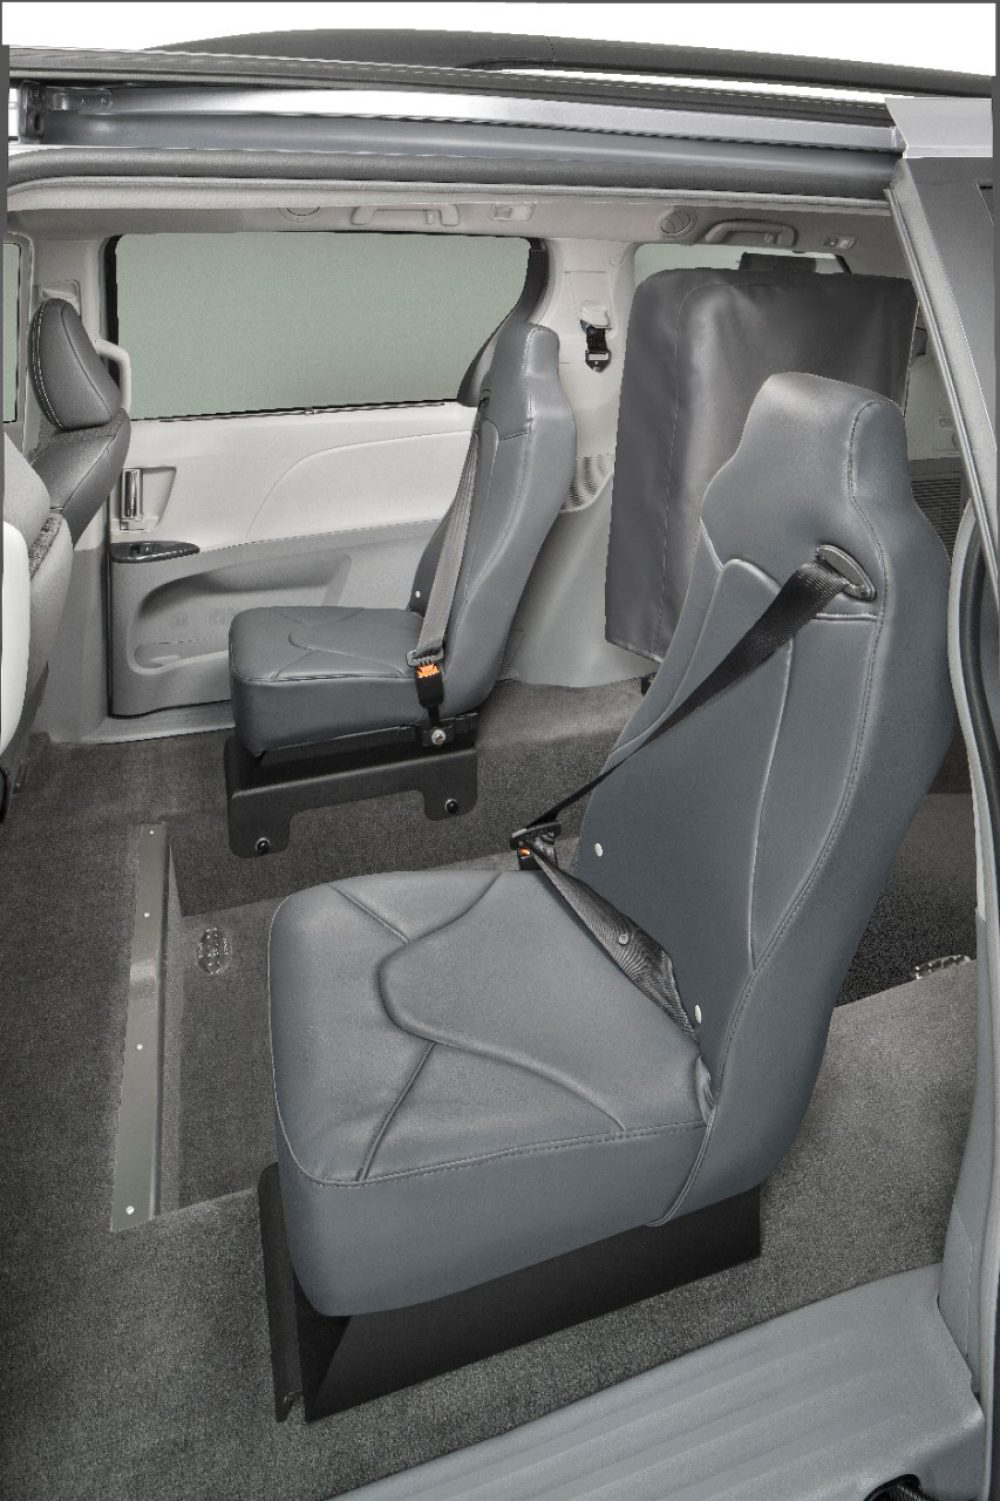 Rear-Entry Van second row seats